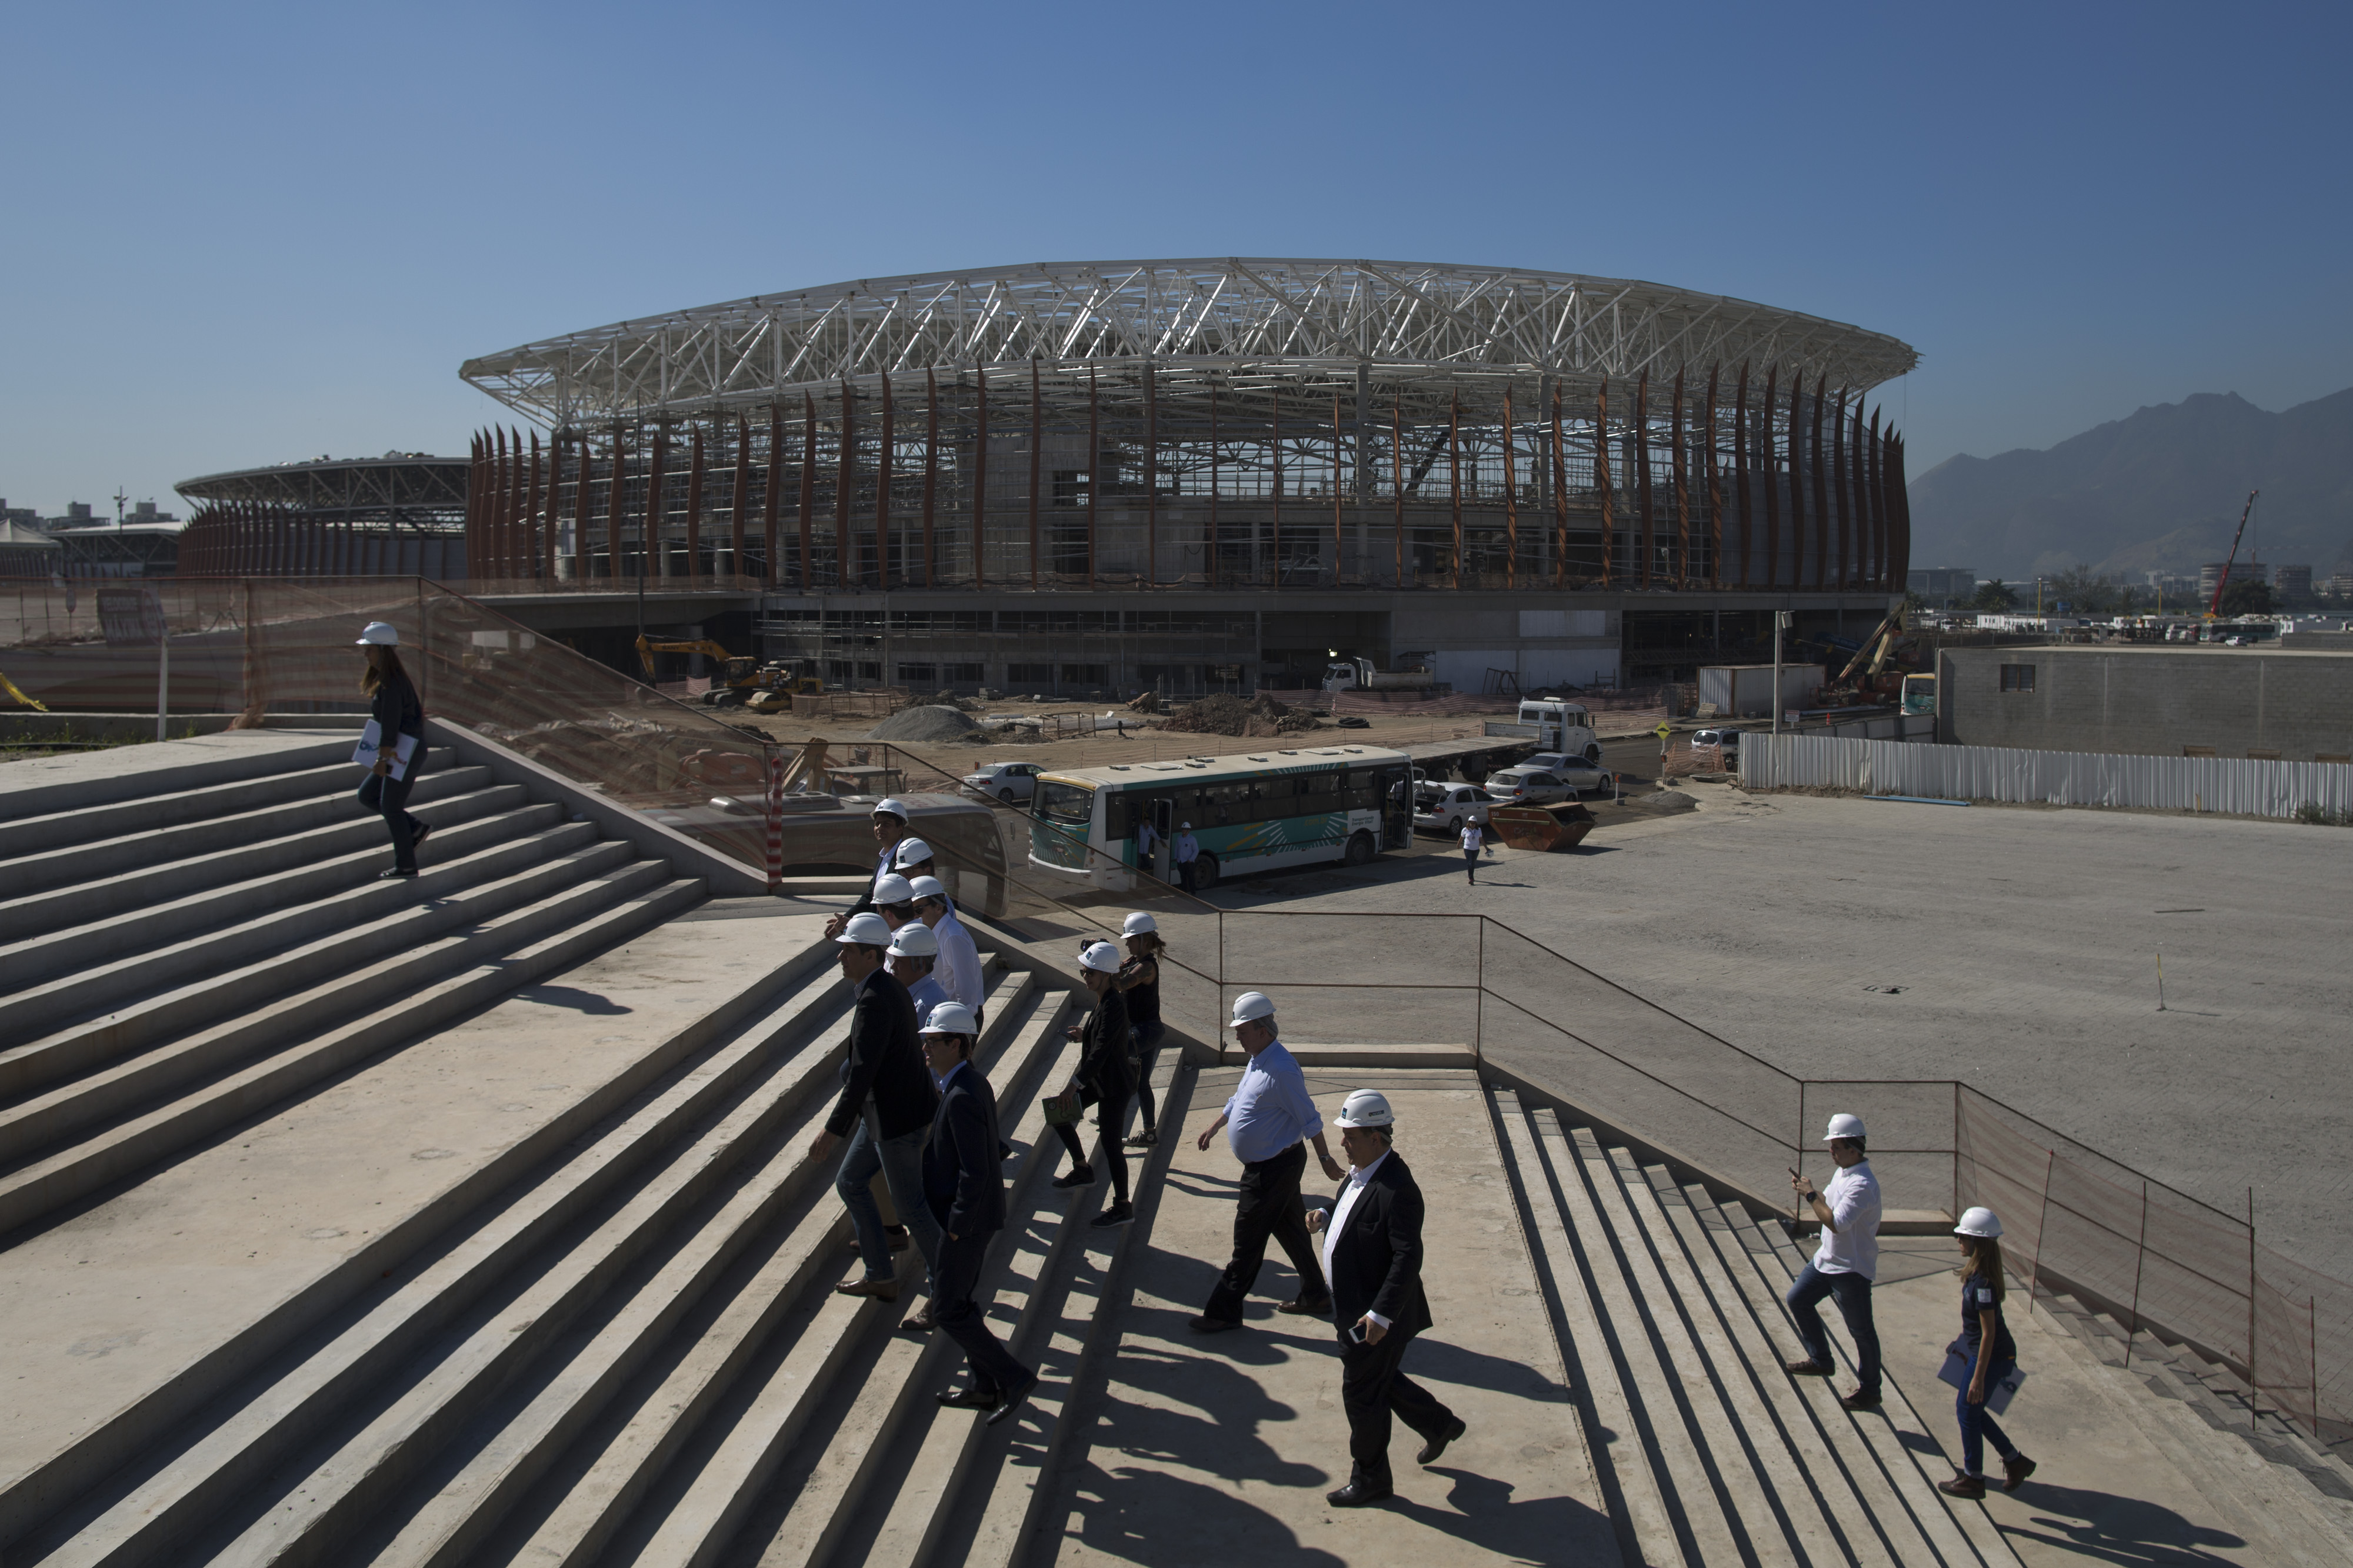 FILE - In this June 11, 2015, file photo, the Arena Carioca 1 is seen in the background as officials visit the Olympic Park of the 2016 Olympics in Rio de Janeiro, Brazil. Hundreds of thousands of foreign visitors are expected for the Olympics, which open